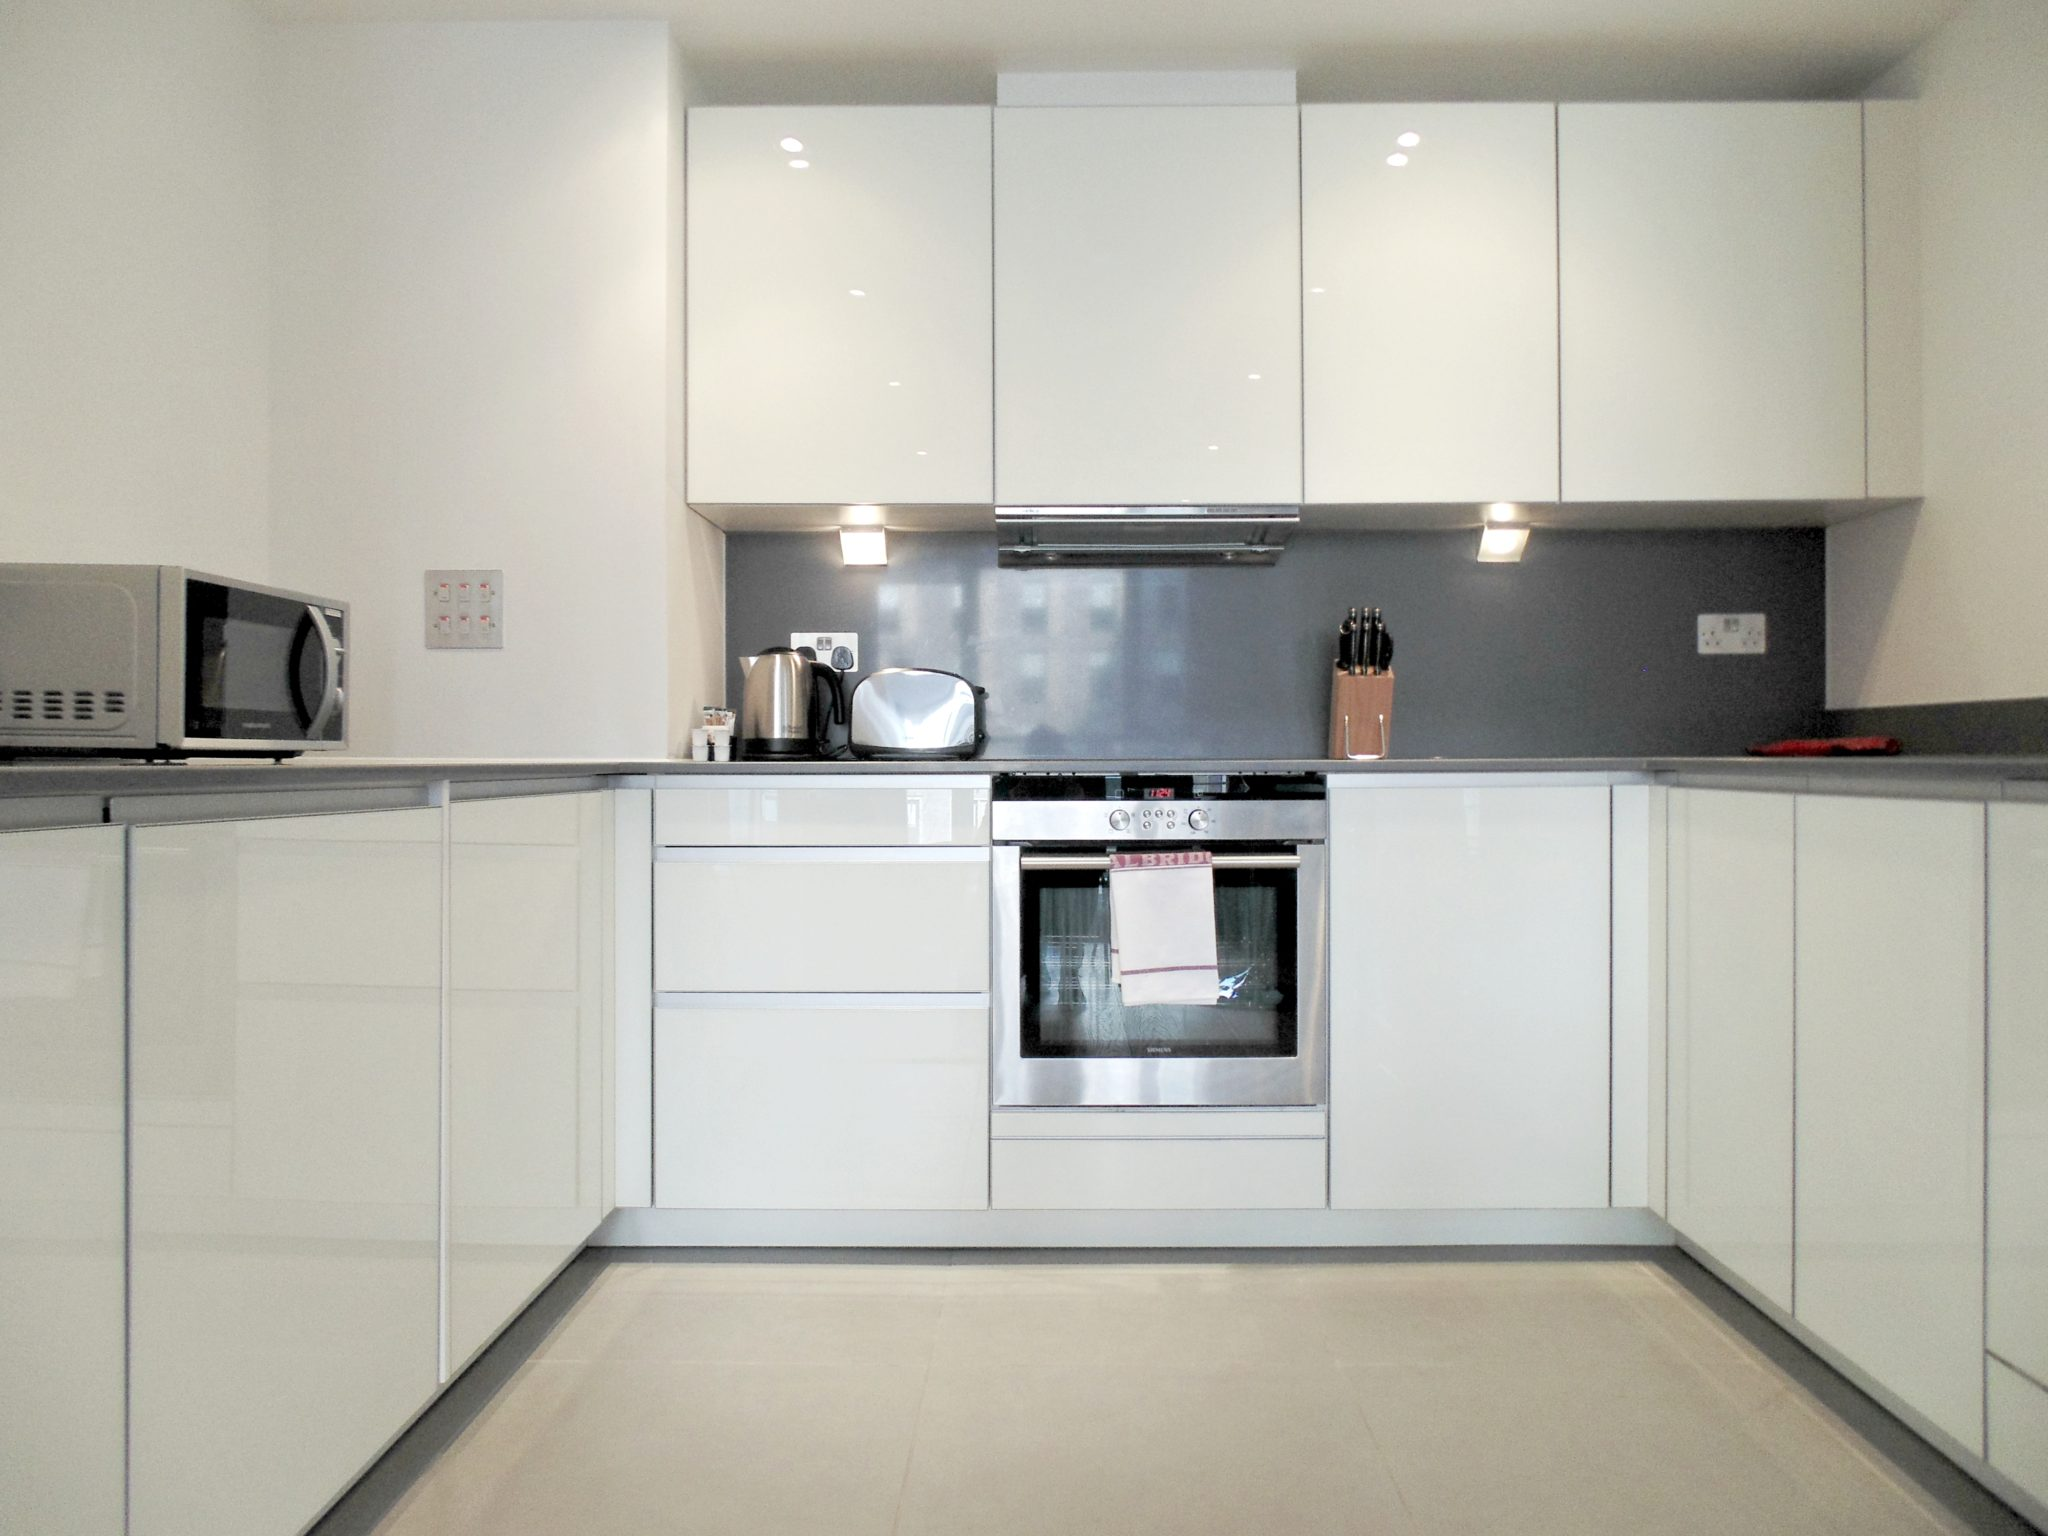 Tower-Hill-Corporate-Apartments-London---Serviced-Accommodation-London-For-Short-&-Extended-Stays---Free-Wifi-&-Weekly-Cleaning---Book-with-Urban-Stay-Now!